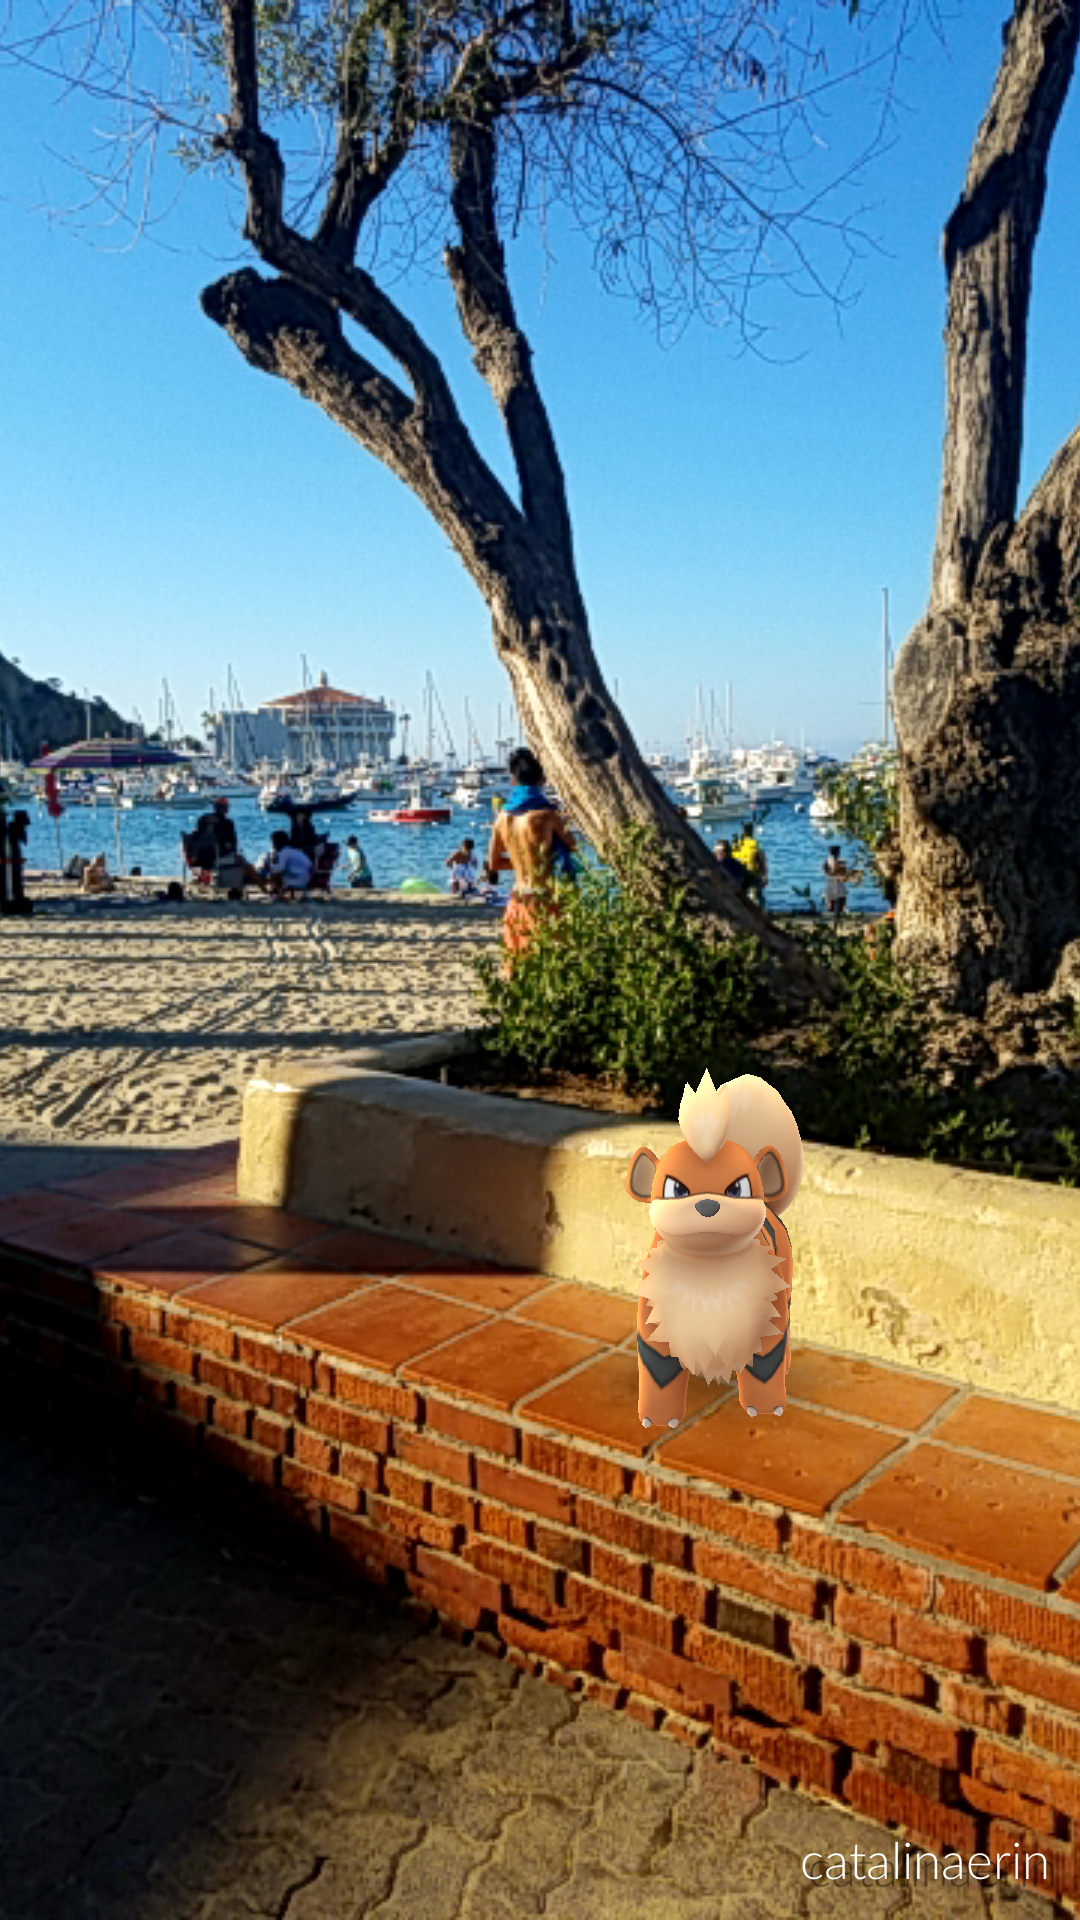 Catalina island pokemon | Catalina Tours Blog | Island tour